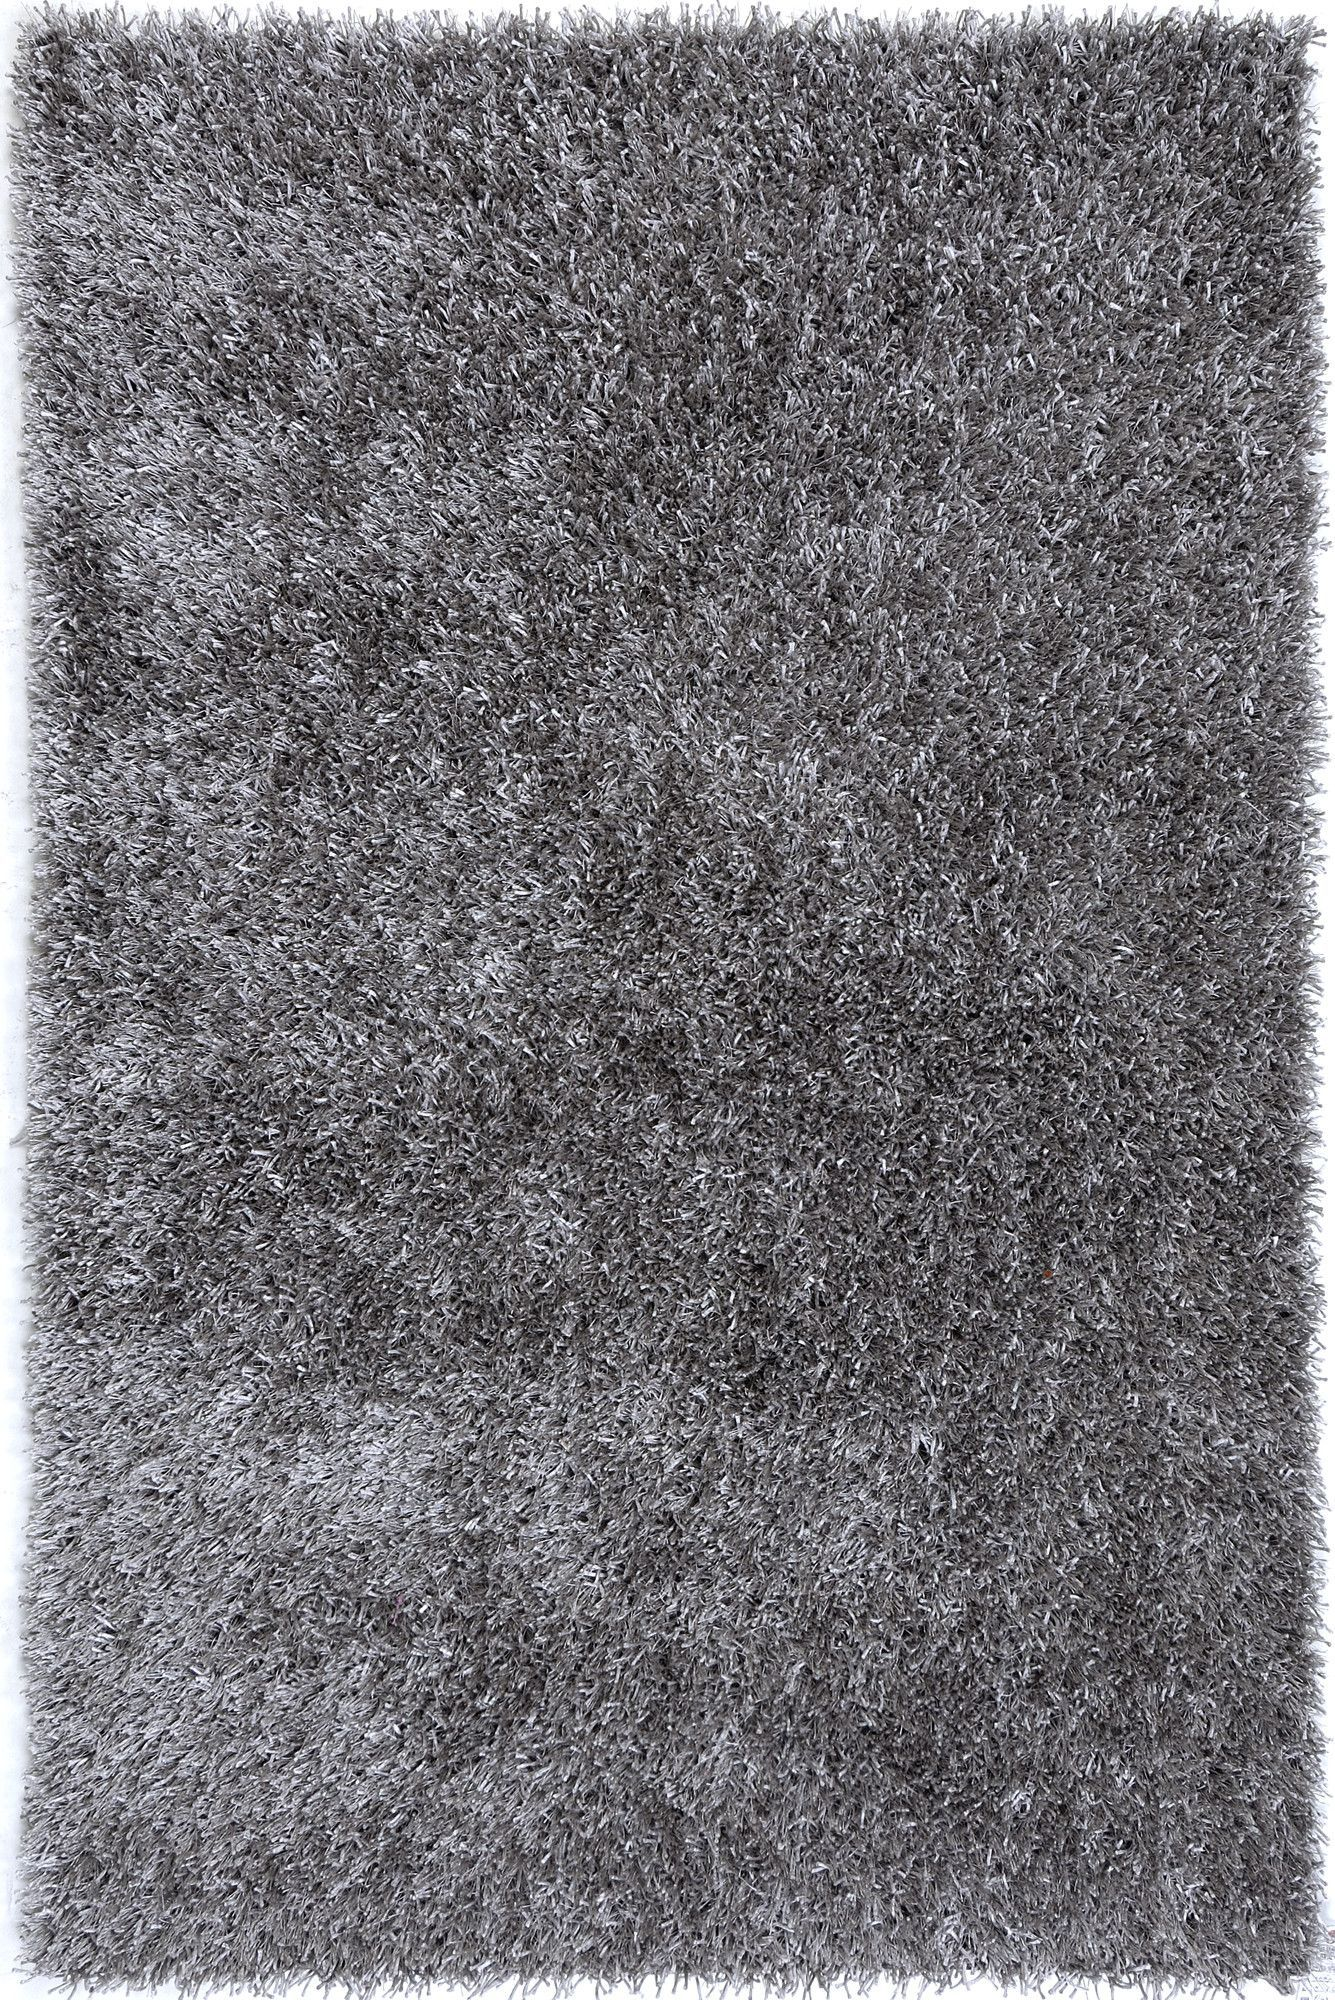 Flux Cool Gray Shag Area Rug Products Rugs Area Rugs